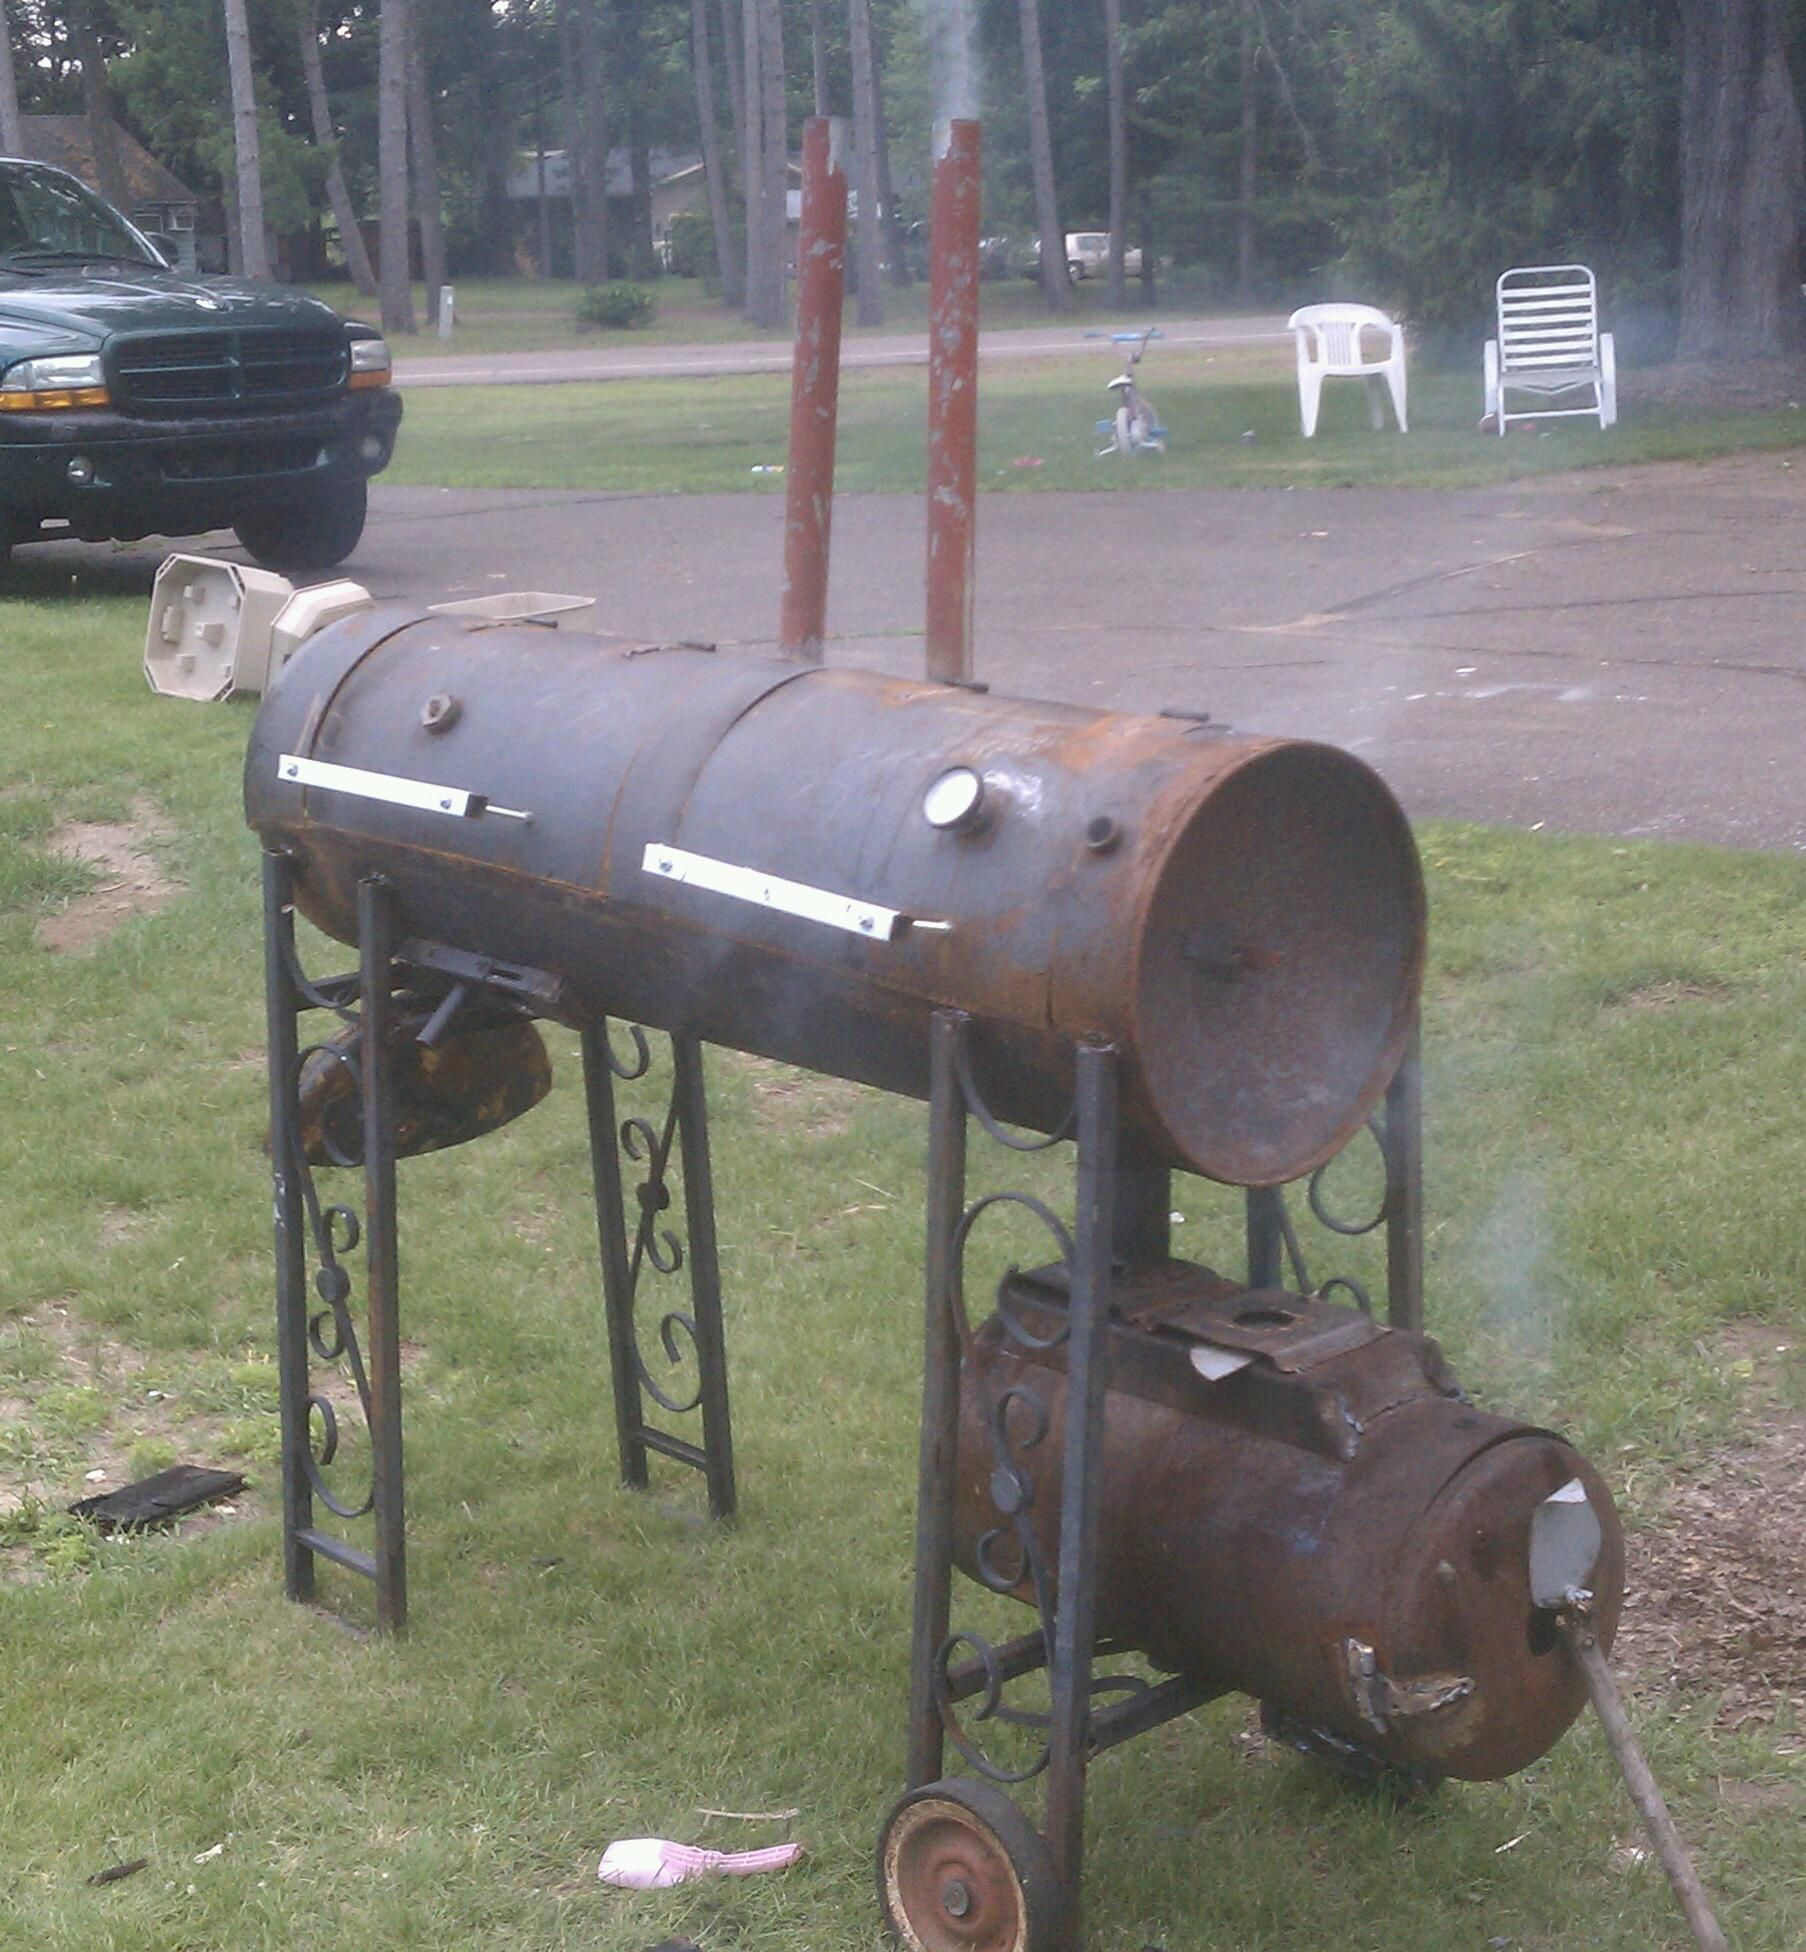 Smoker On Right Grill On Left Made From Hot Water Heater Air Compressor Porch Railing 2bed Frames Old Close Dryer Hot Water Heater Welding Projects Bbq Pit